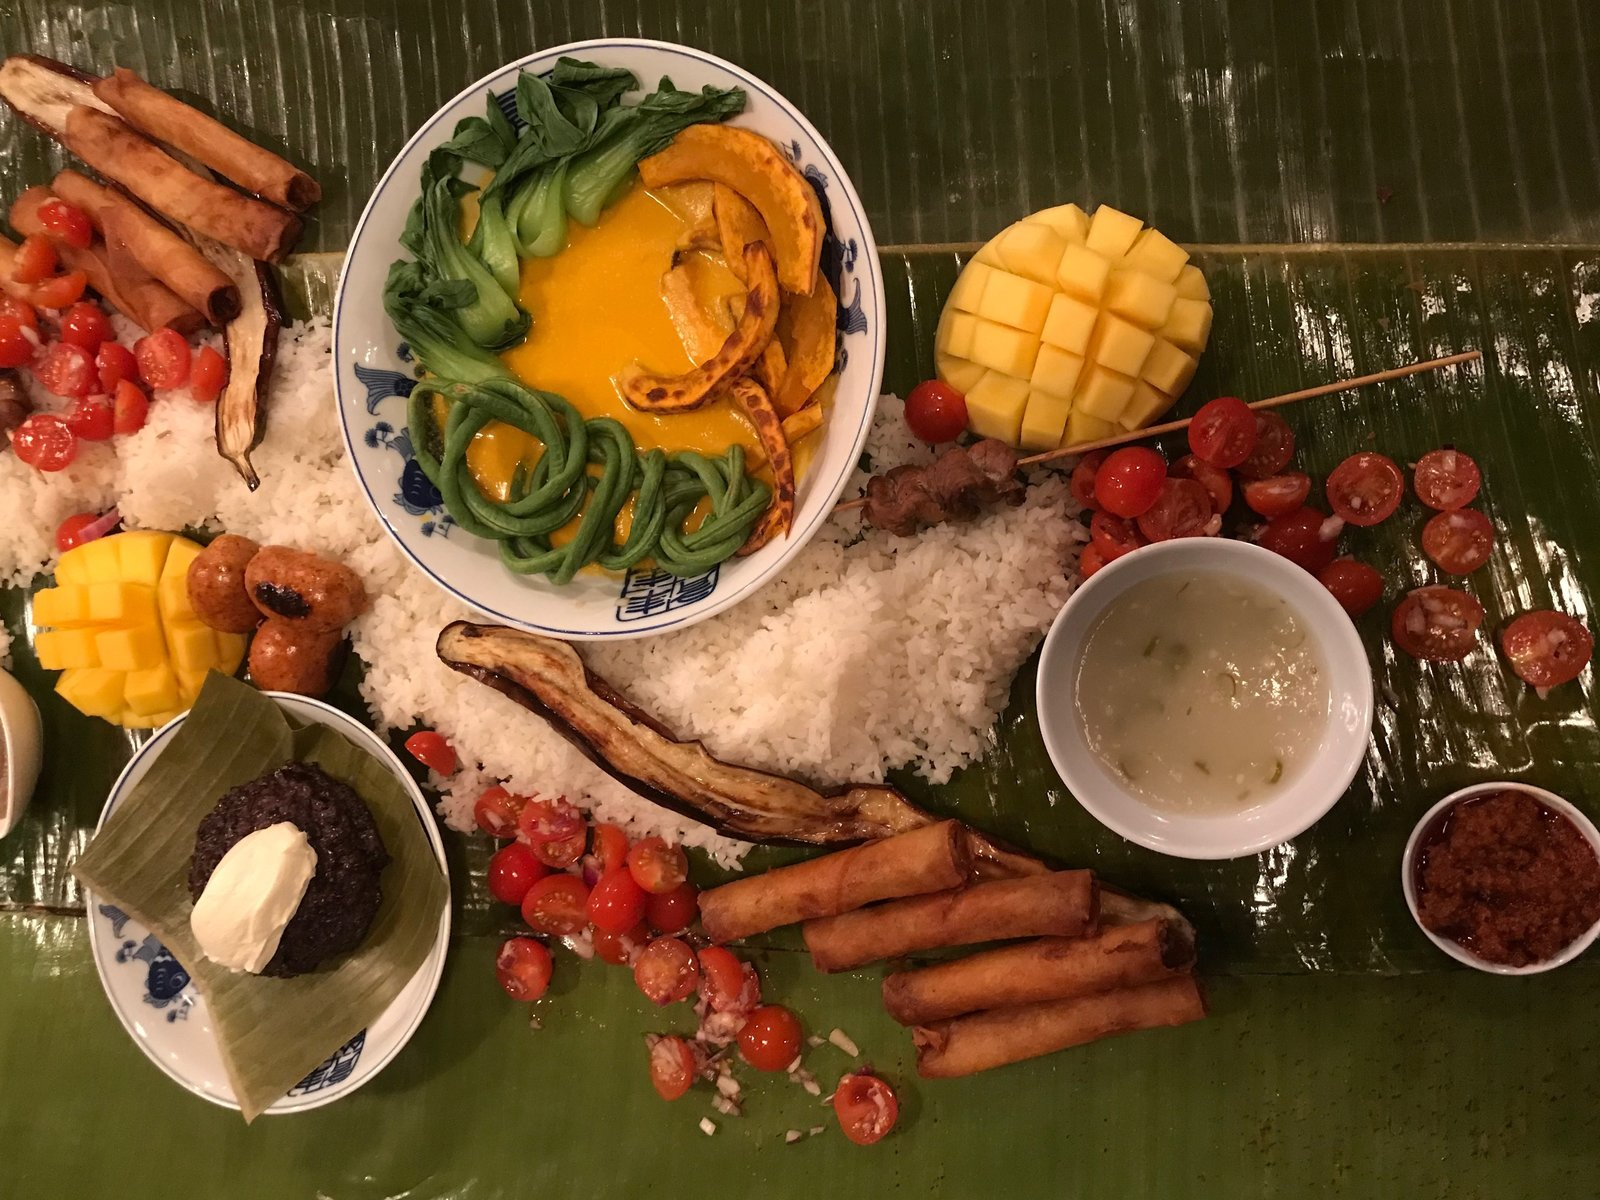 A kamayan is a communal-style Filipino feast, composed of colorful arrays of food that are usually served on banana leaves and eaten without utensils. / Bettina Makalintal for NPR